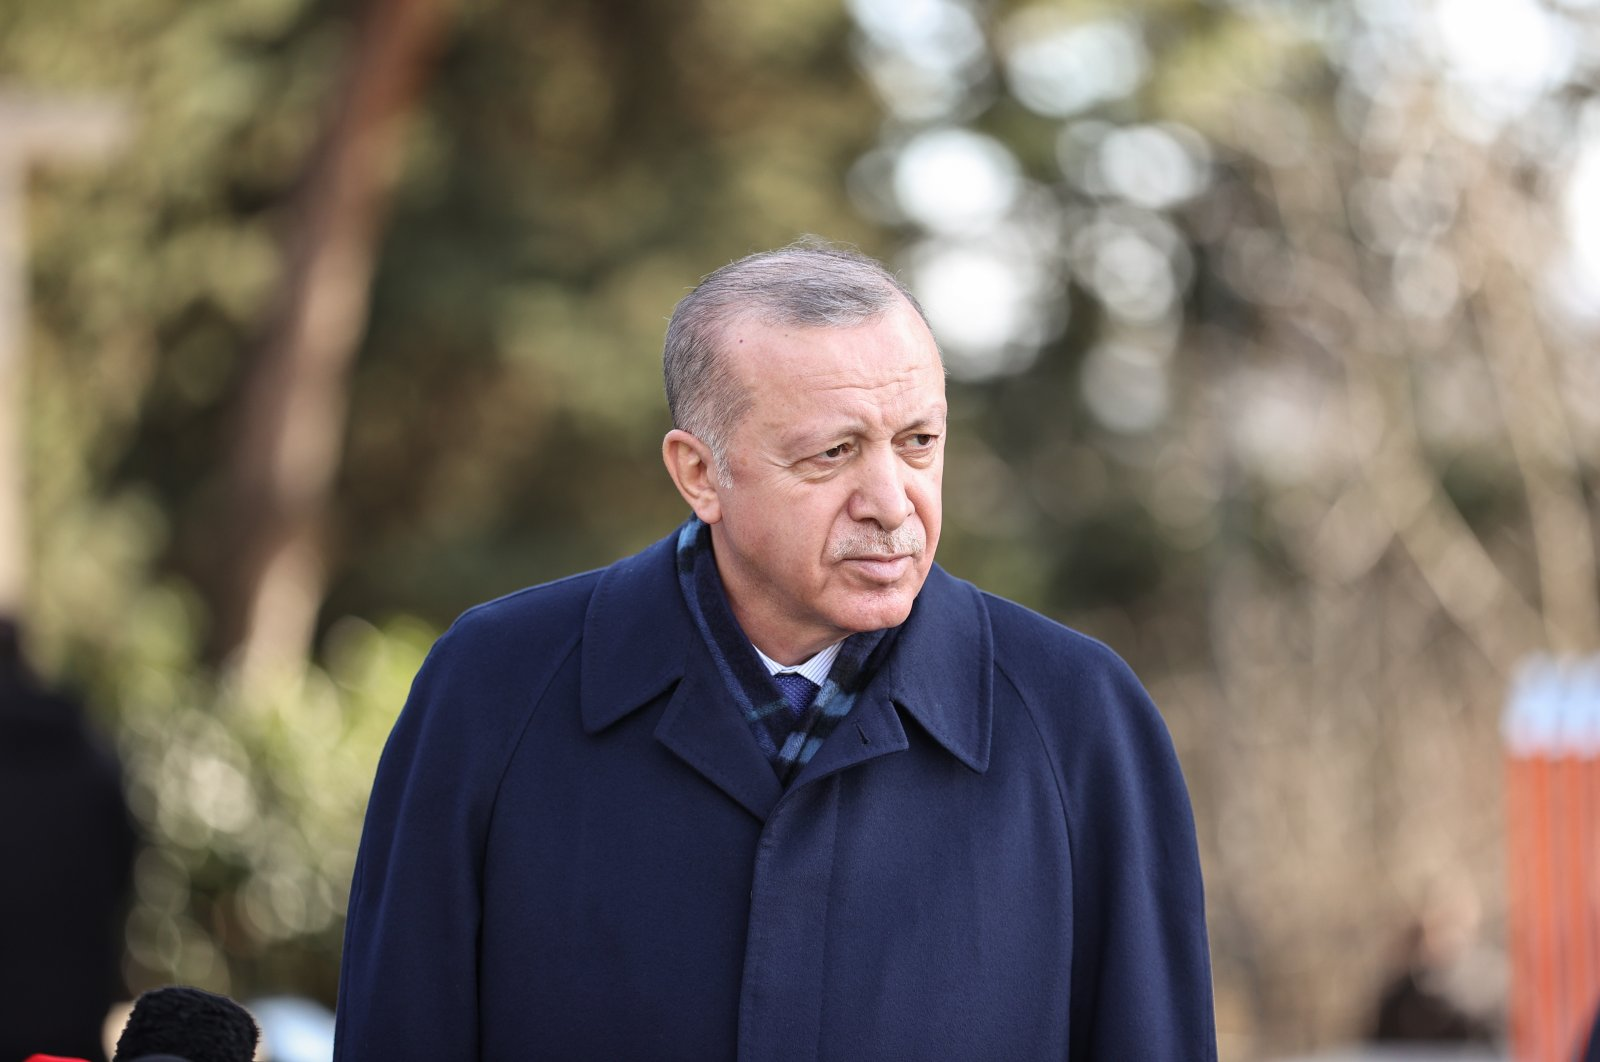 President Recep Tayyip Erdoğan leaves a mosque in Istanbul's Üsküdar district after Friday prayers, Jan. 22, 2021. (AA Photo)